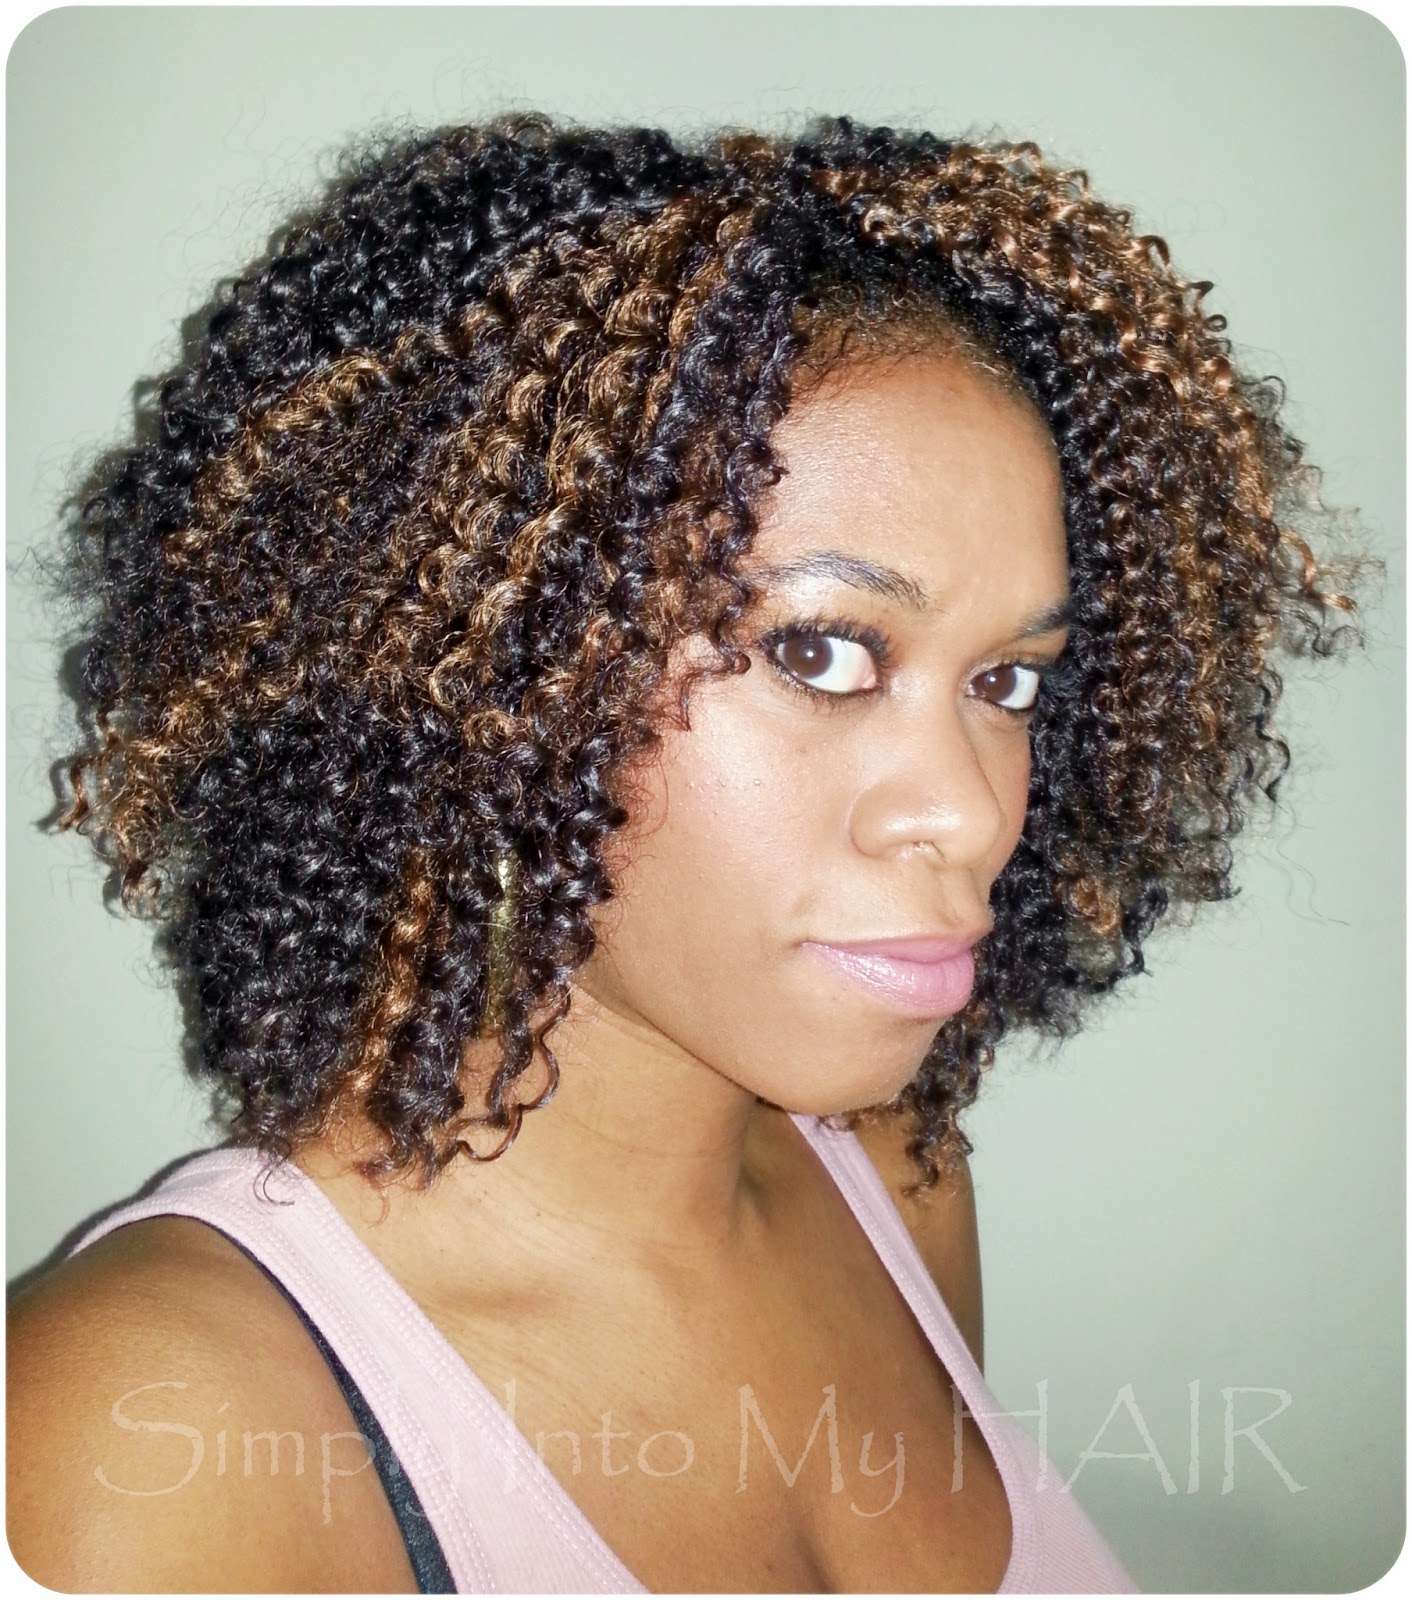 Crochet Hair For Braids : Crochet Braids #7 Simply Into My HAIR